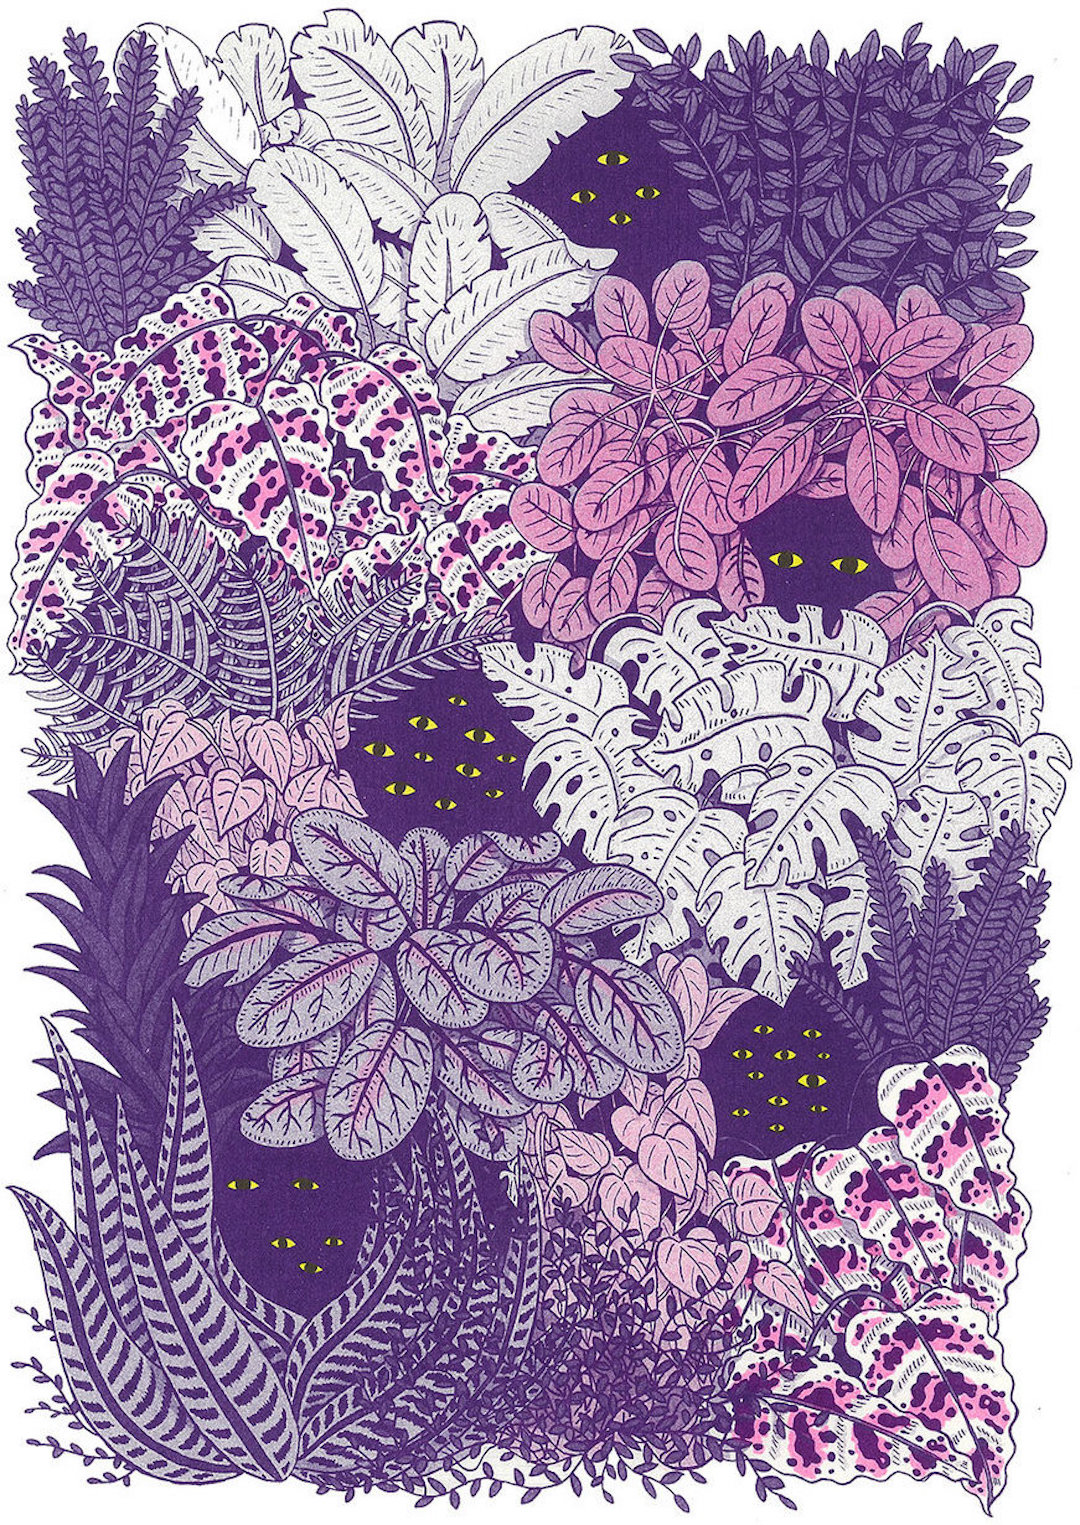 Purple illustration by Ashley Ronning